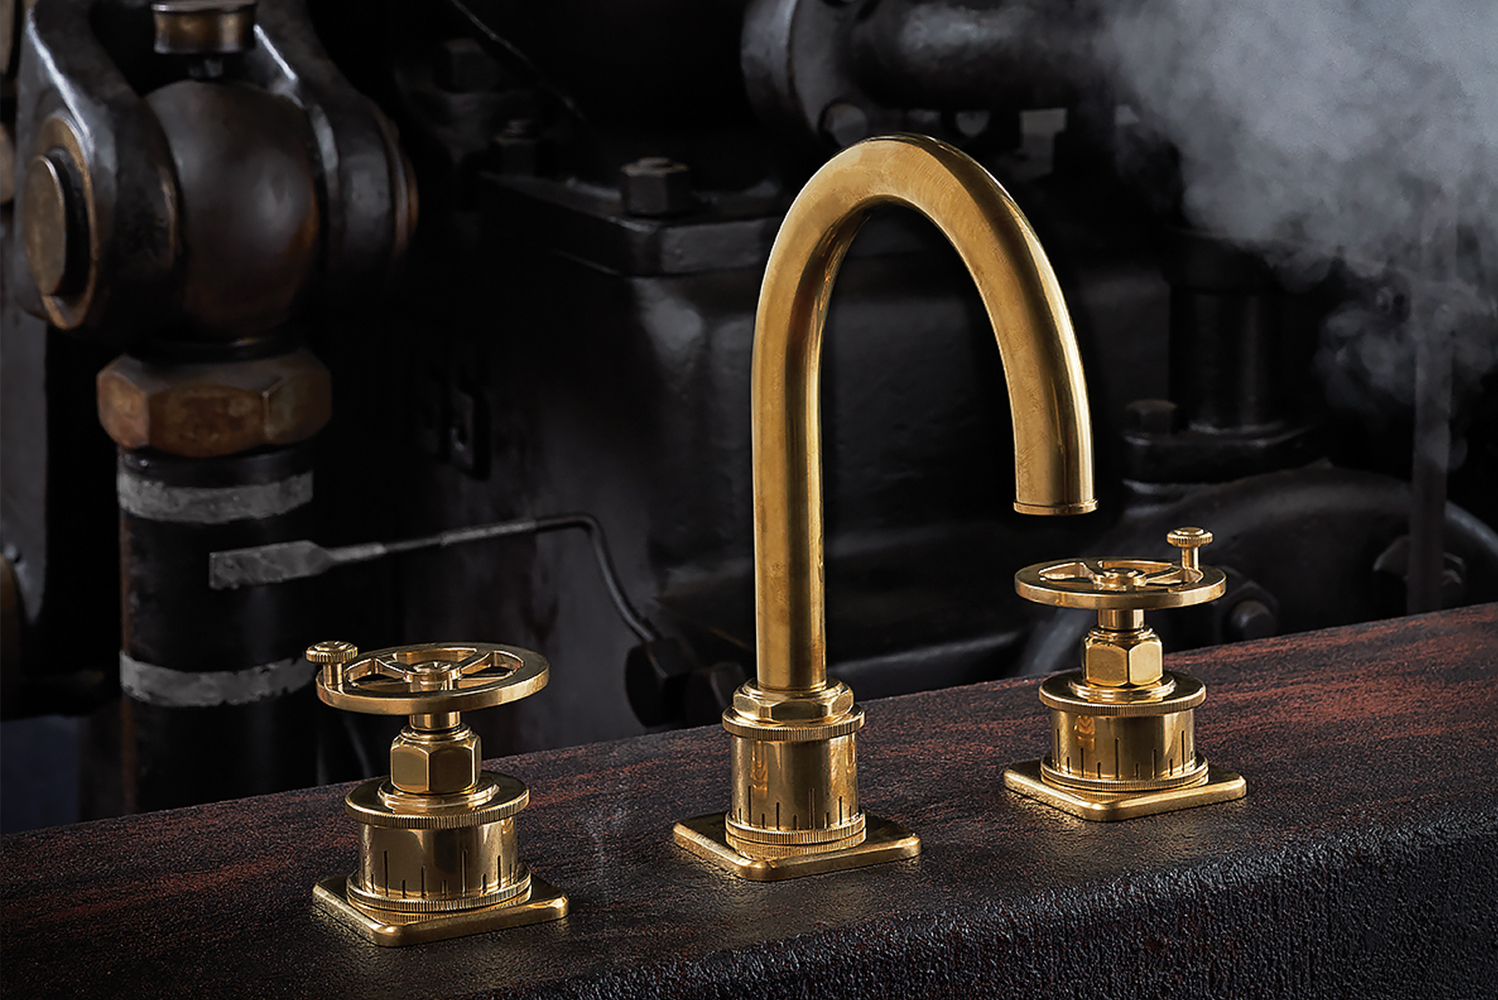 Introducing the Steampunk Bay series from California Faucets.